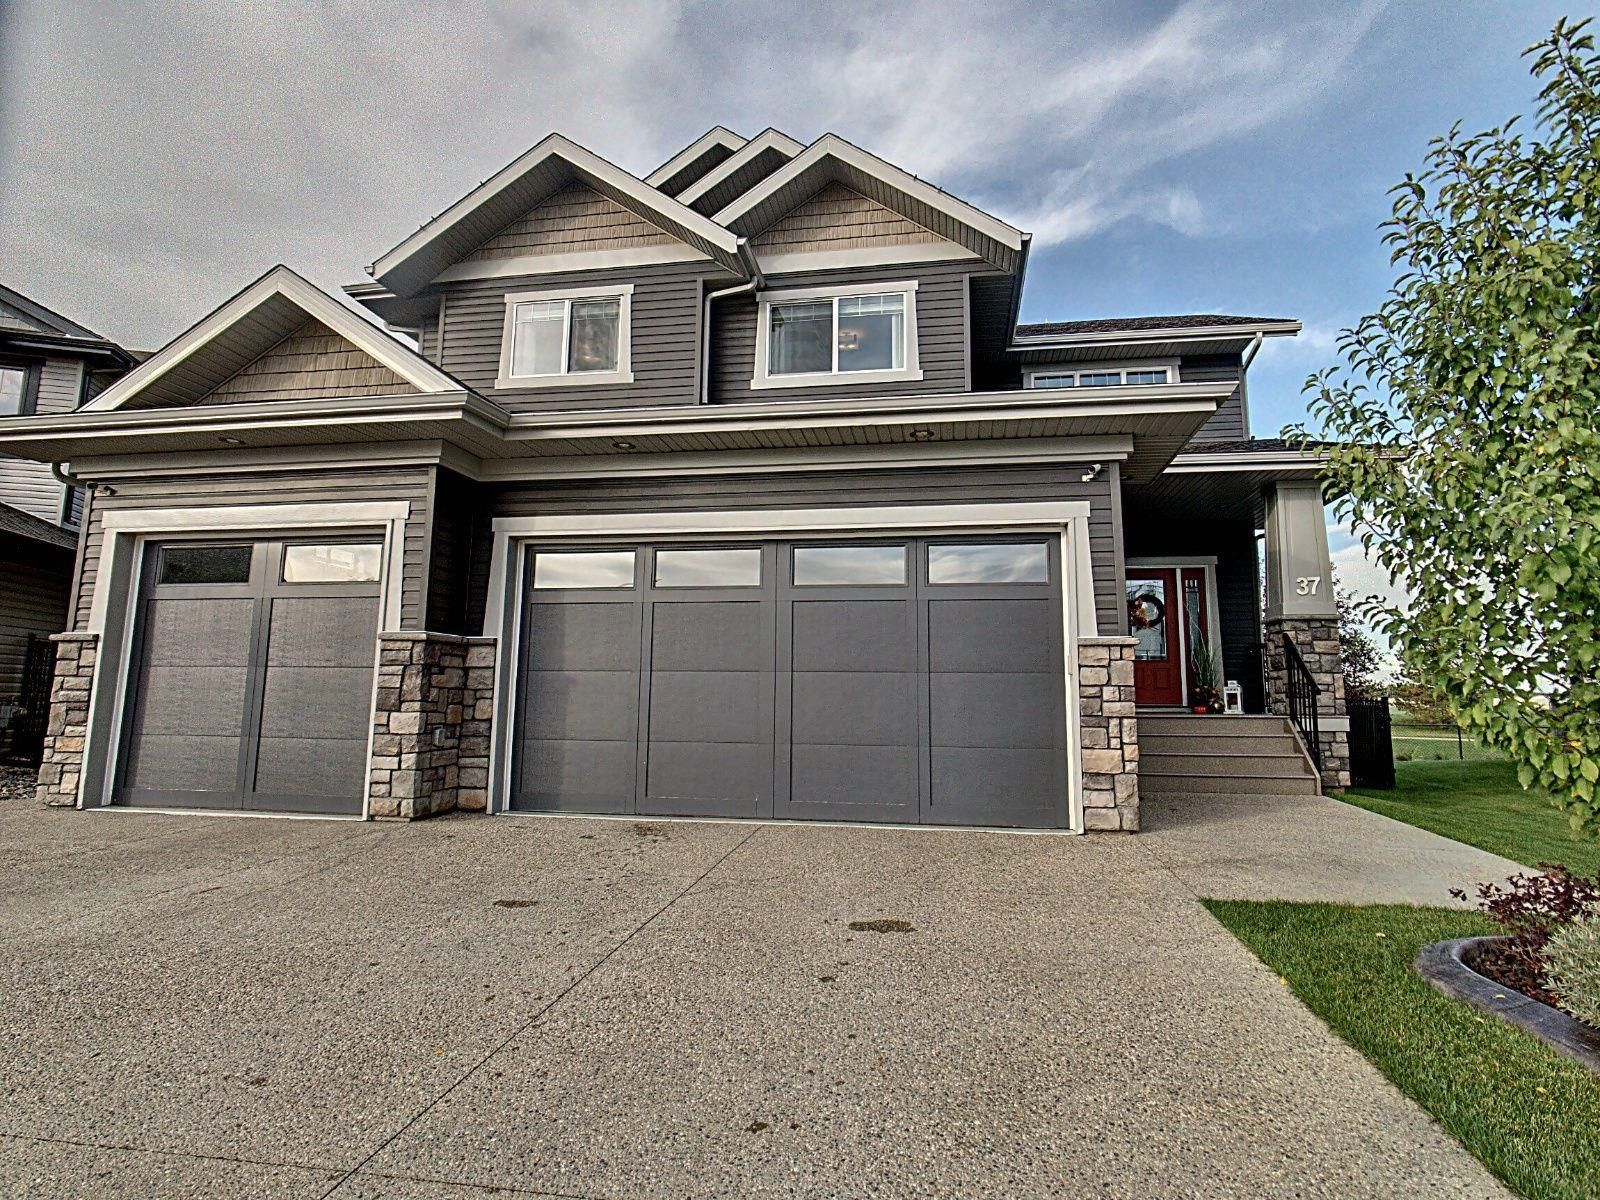 Main Photo: 37 DANFIELD Place: Spruce Grove House for sale : MLS®# E4263522